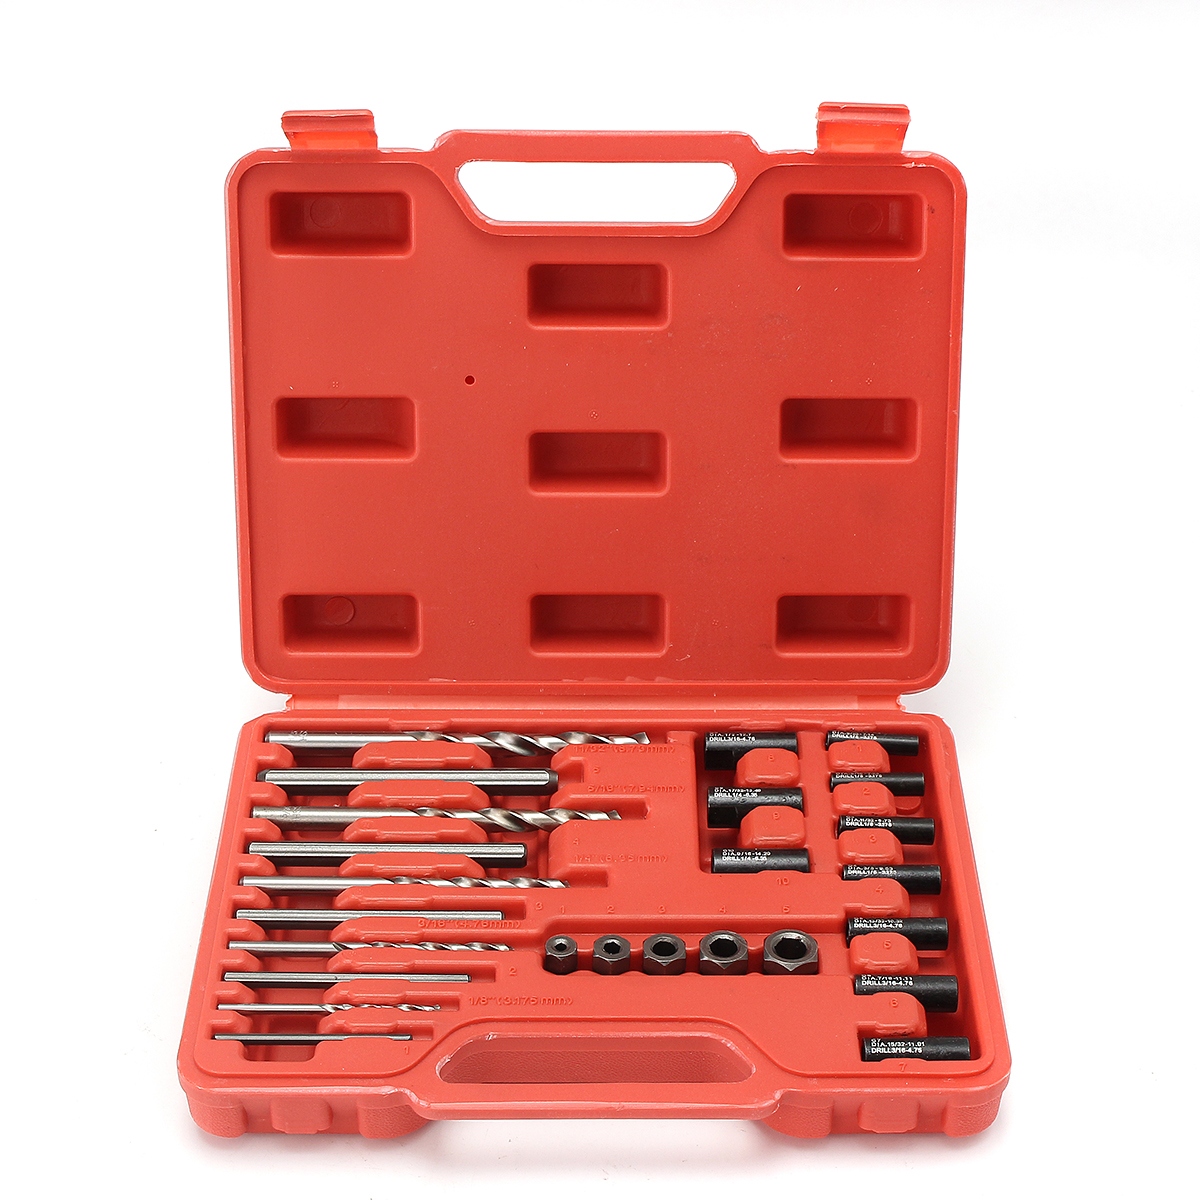 25Pcs Professional Carbon Steel Thread Repair Garage Tool Kit Set With Case